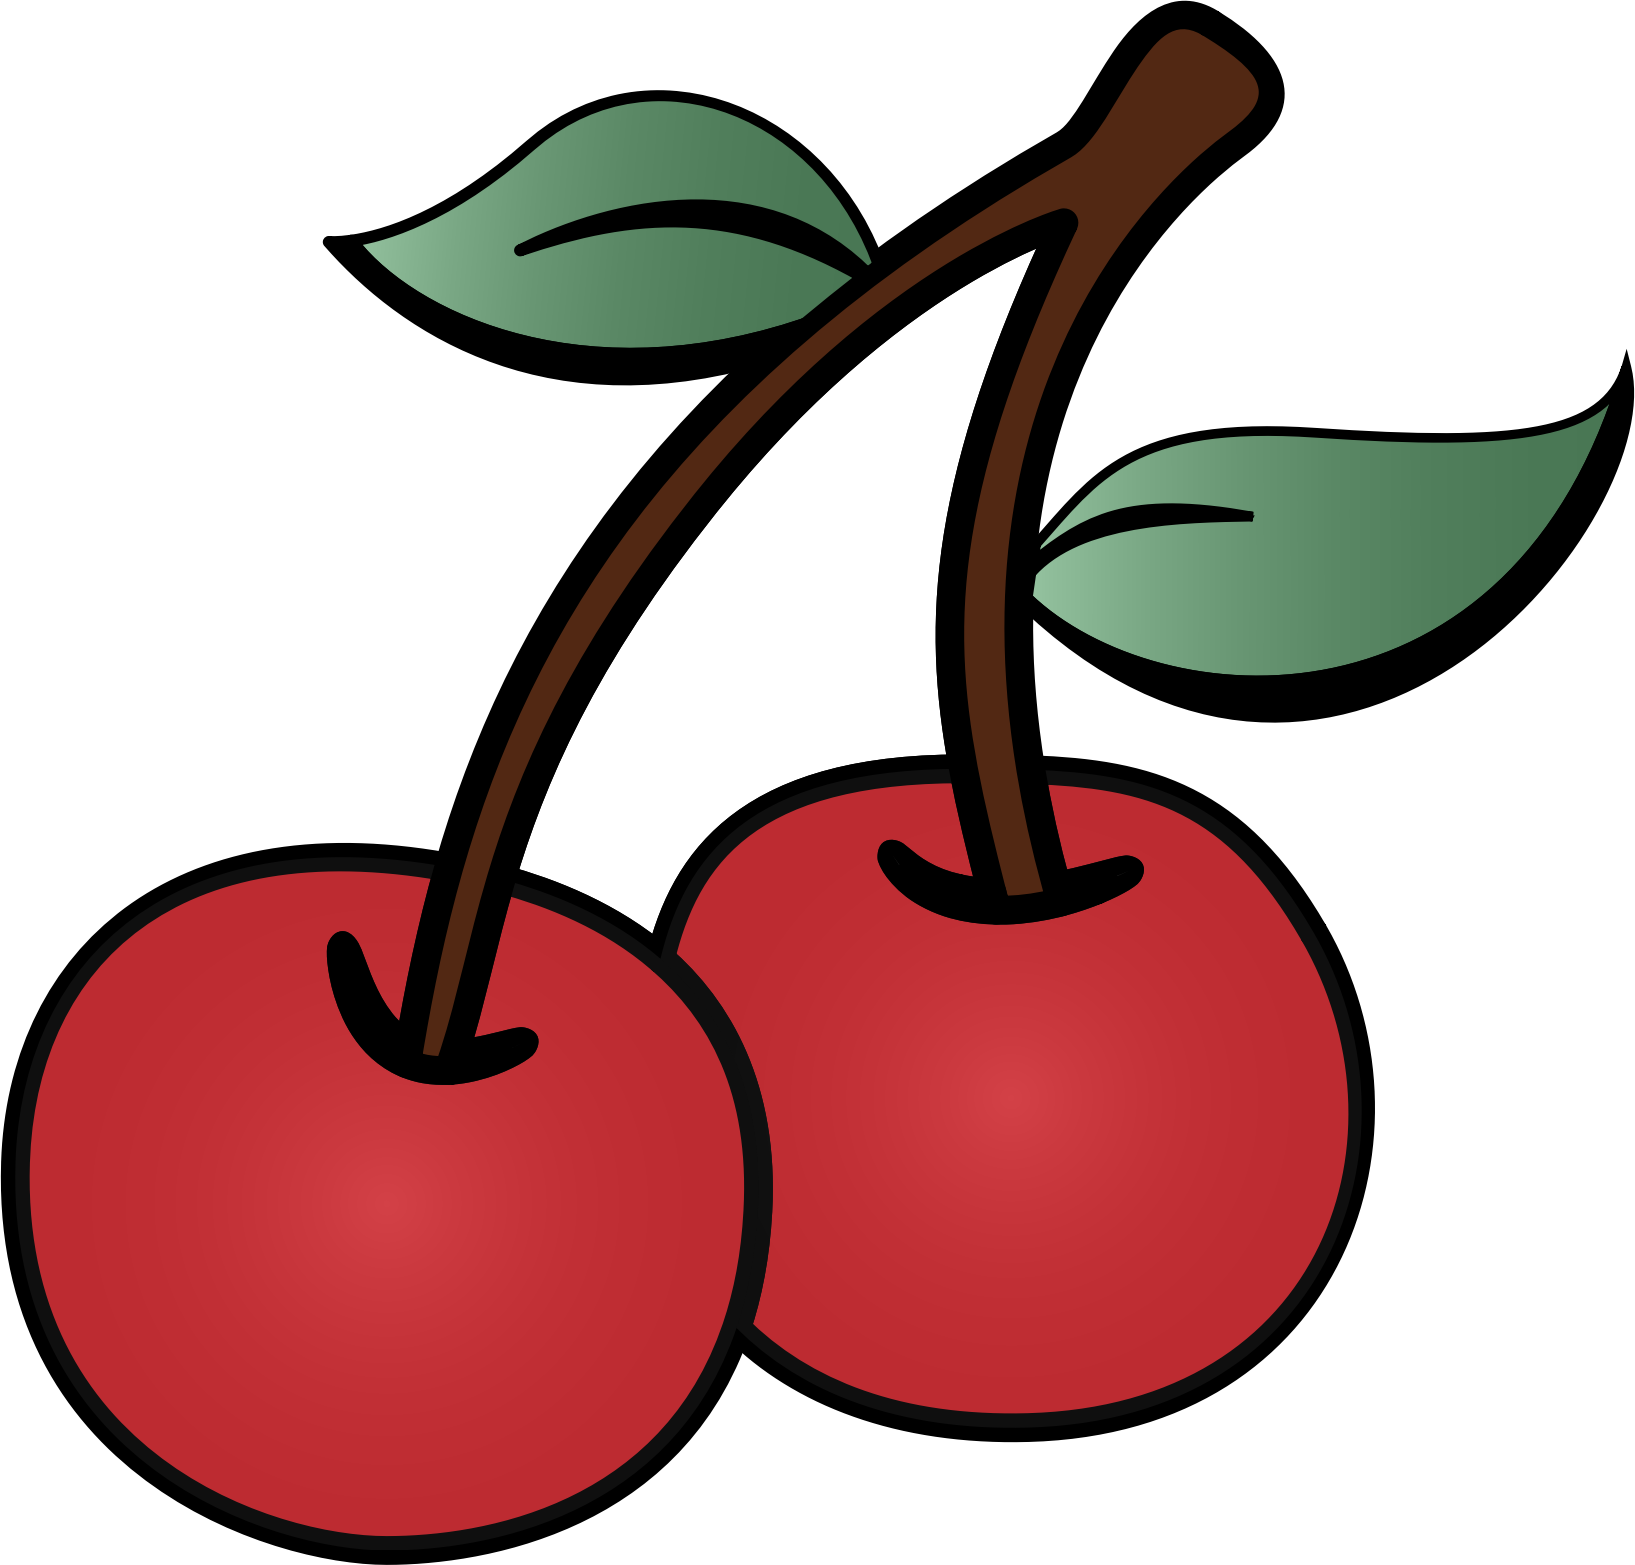 Cherries Clip Art.